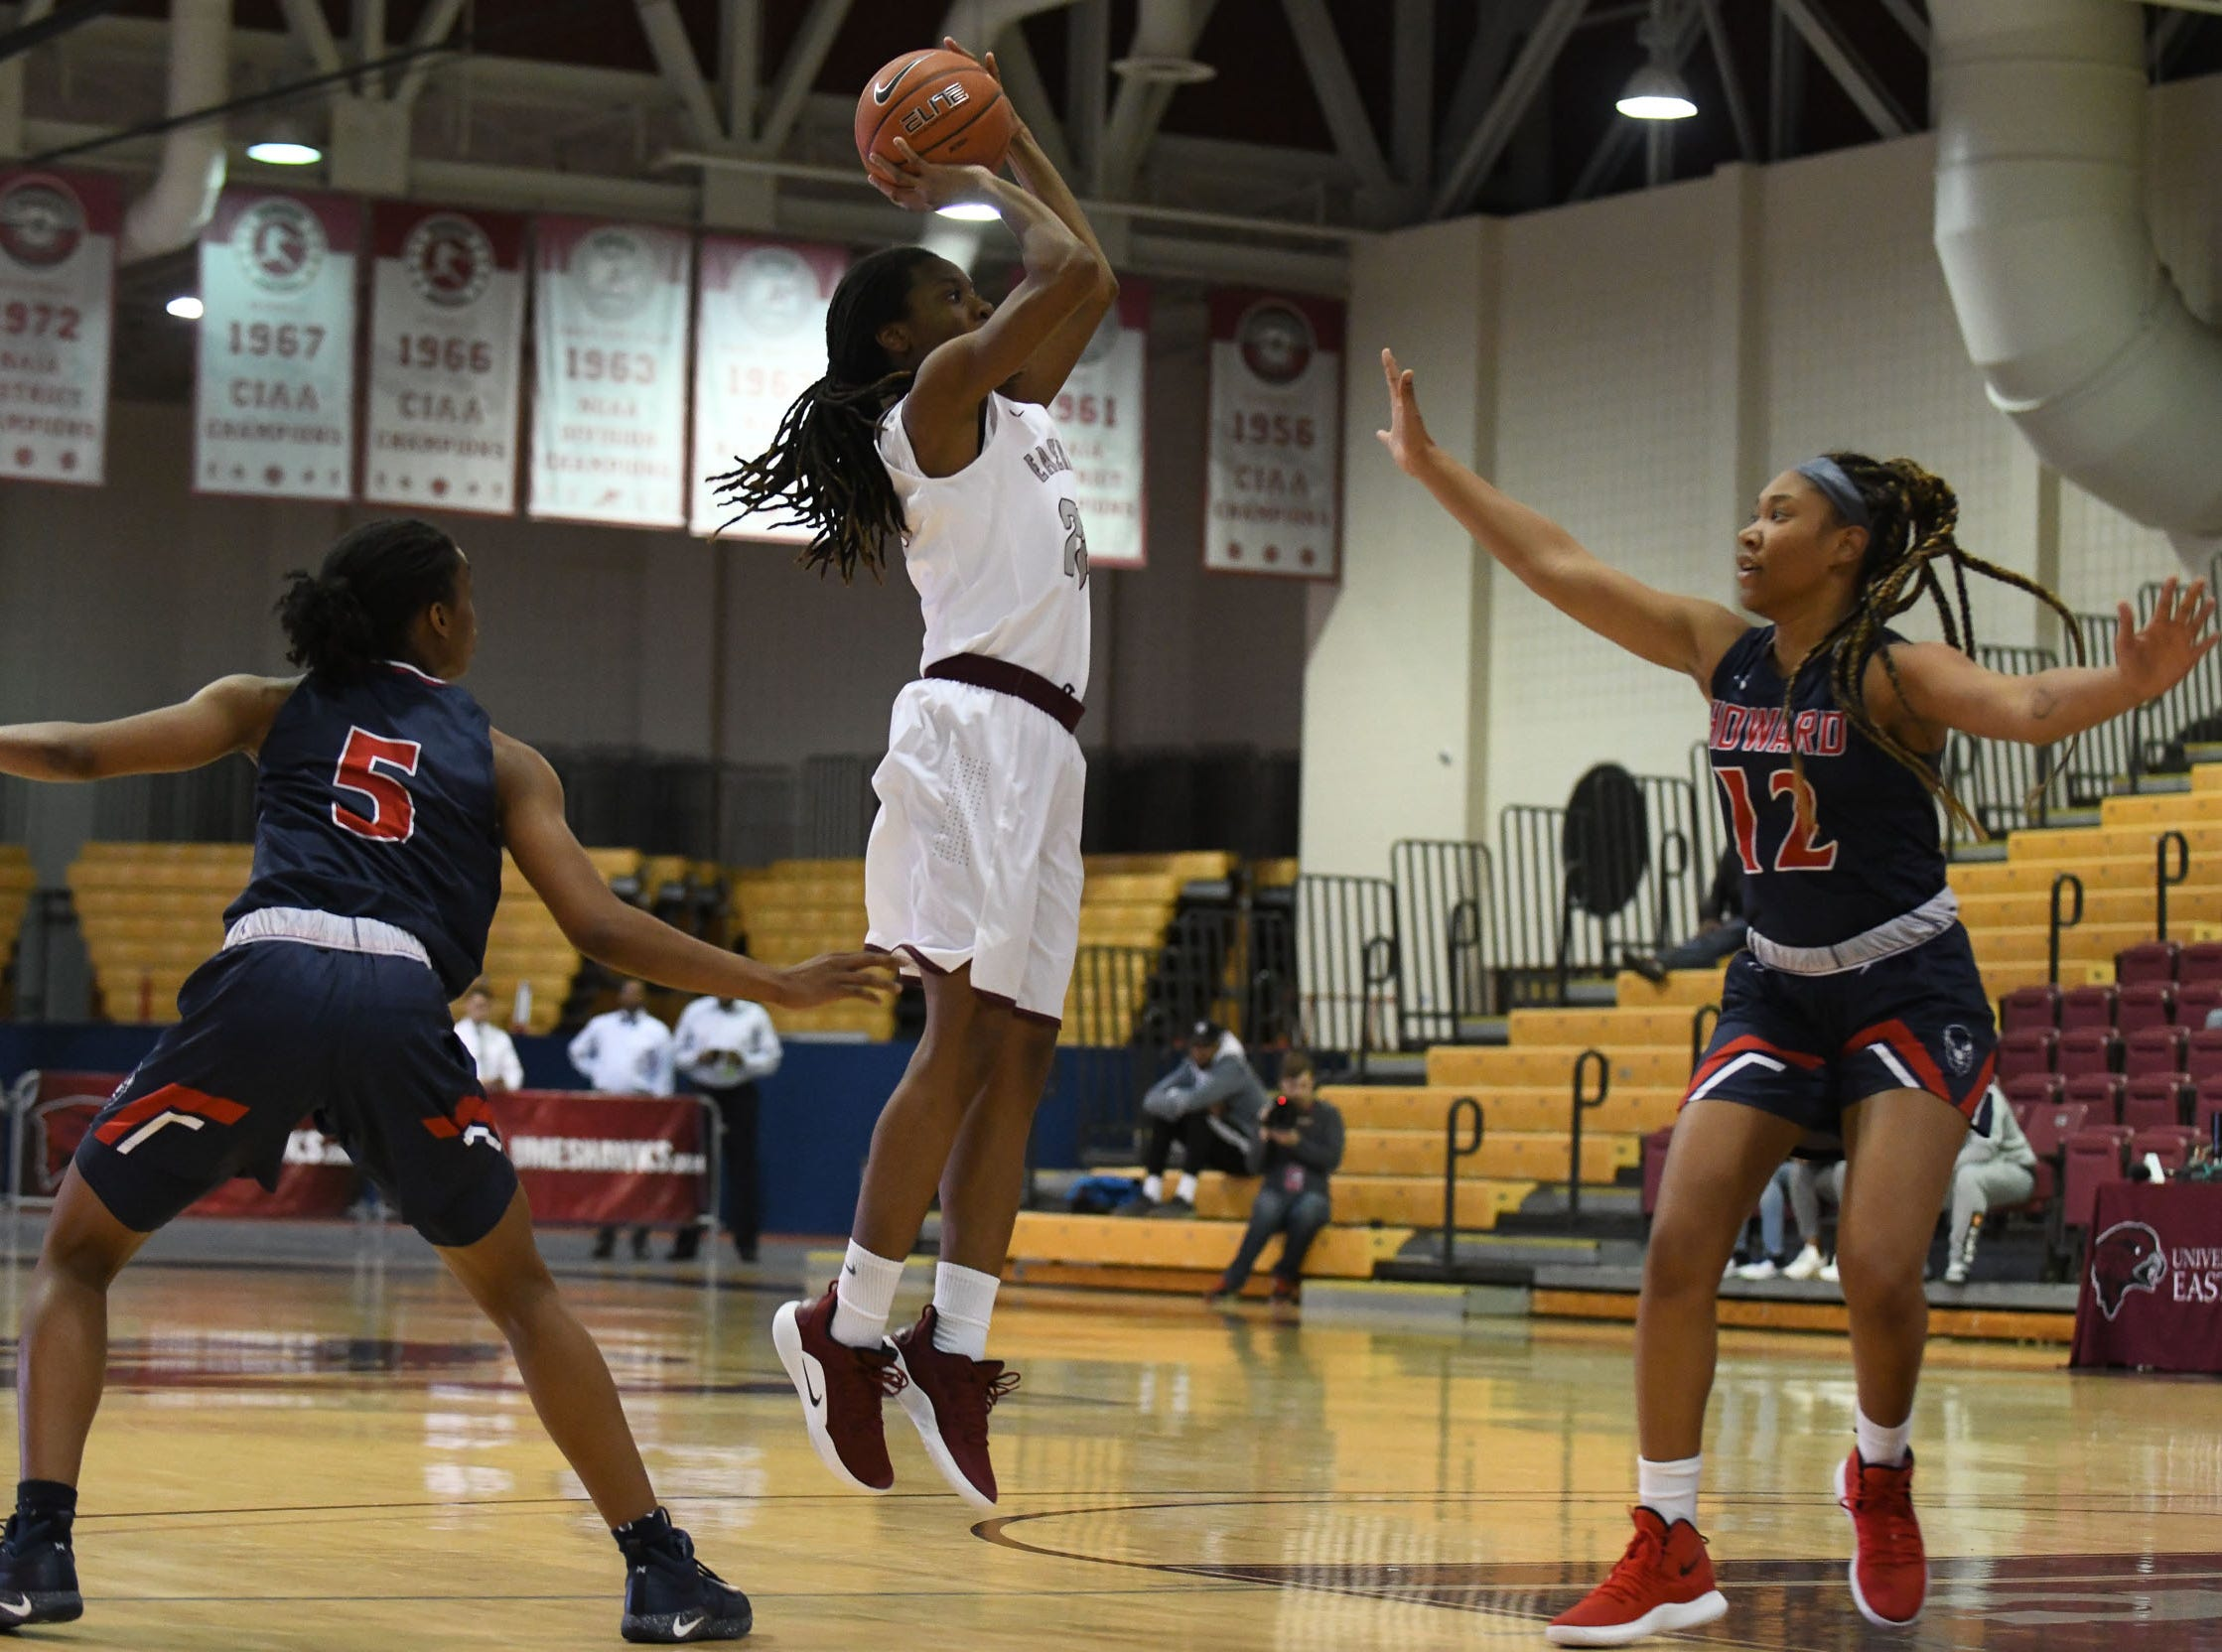 Maryland Eastern Shore's Dominique Walker with the jumper against Howard University on Monday, Jan 7, 2018.